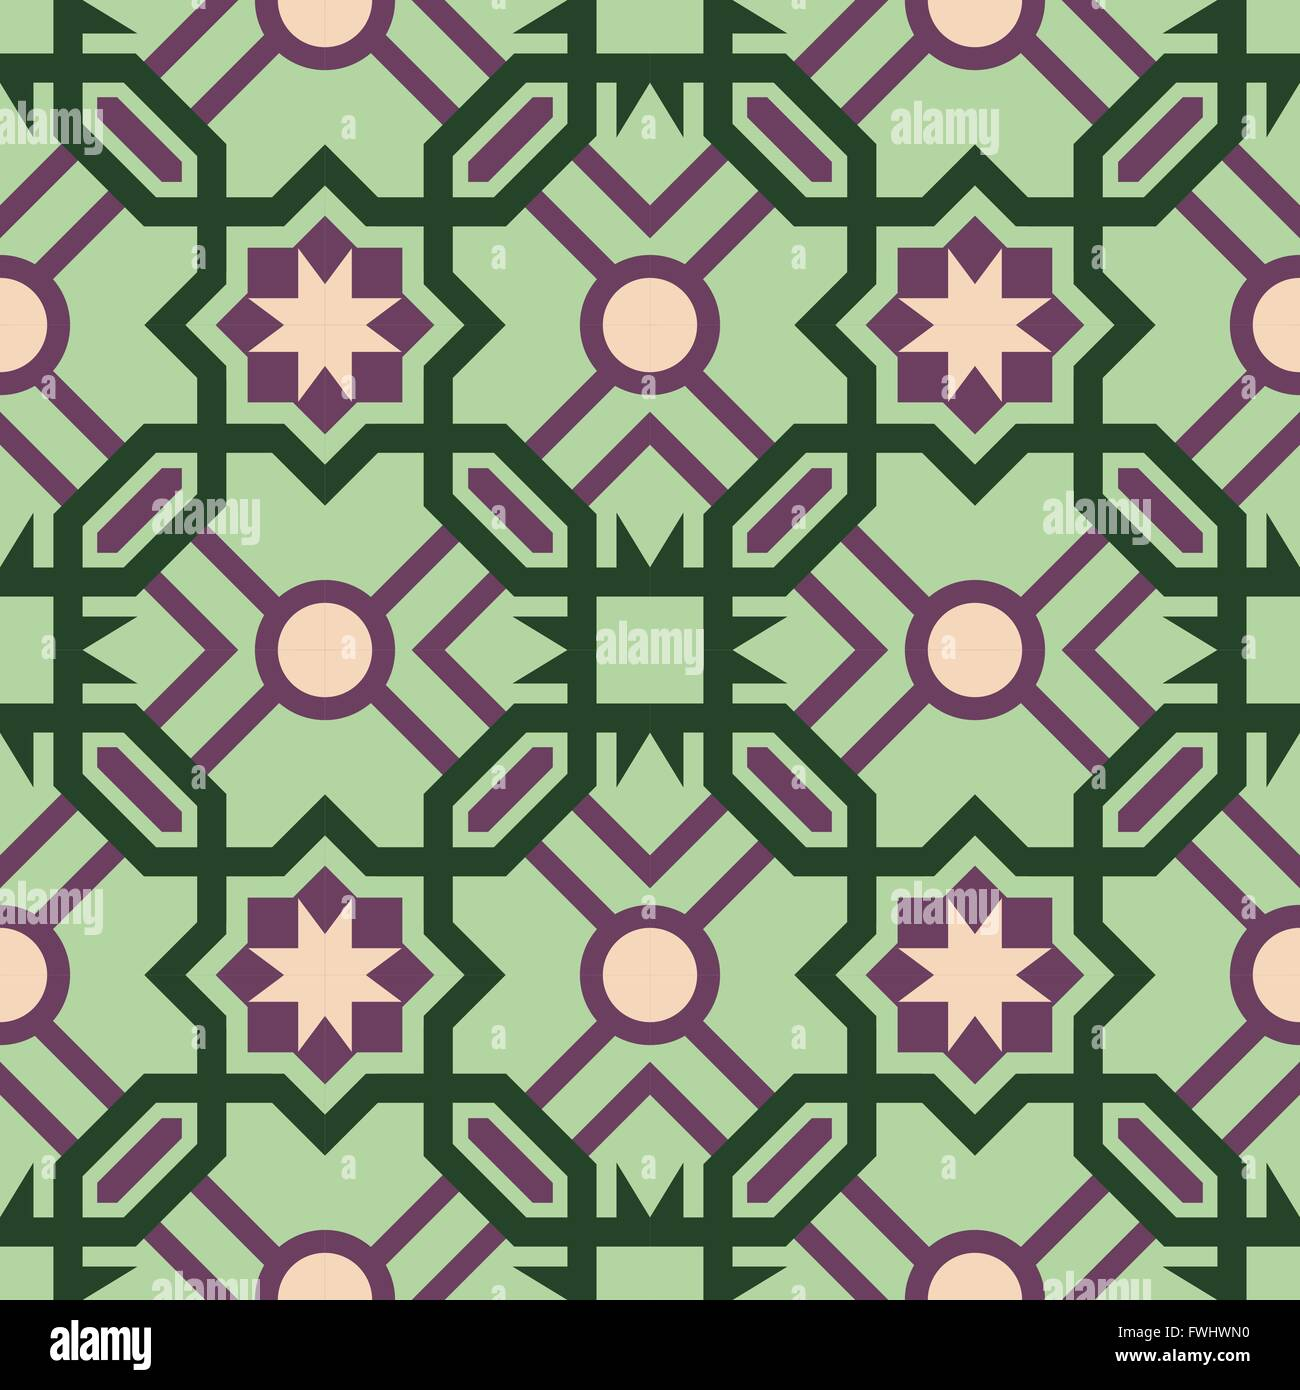 Abstract Ceramic Mosaic Floor Tile Seamless Pattern With Geometric